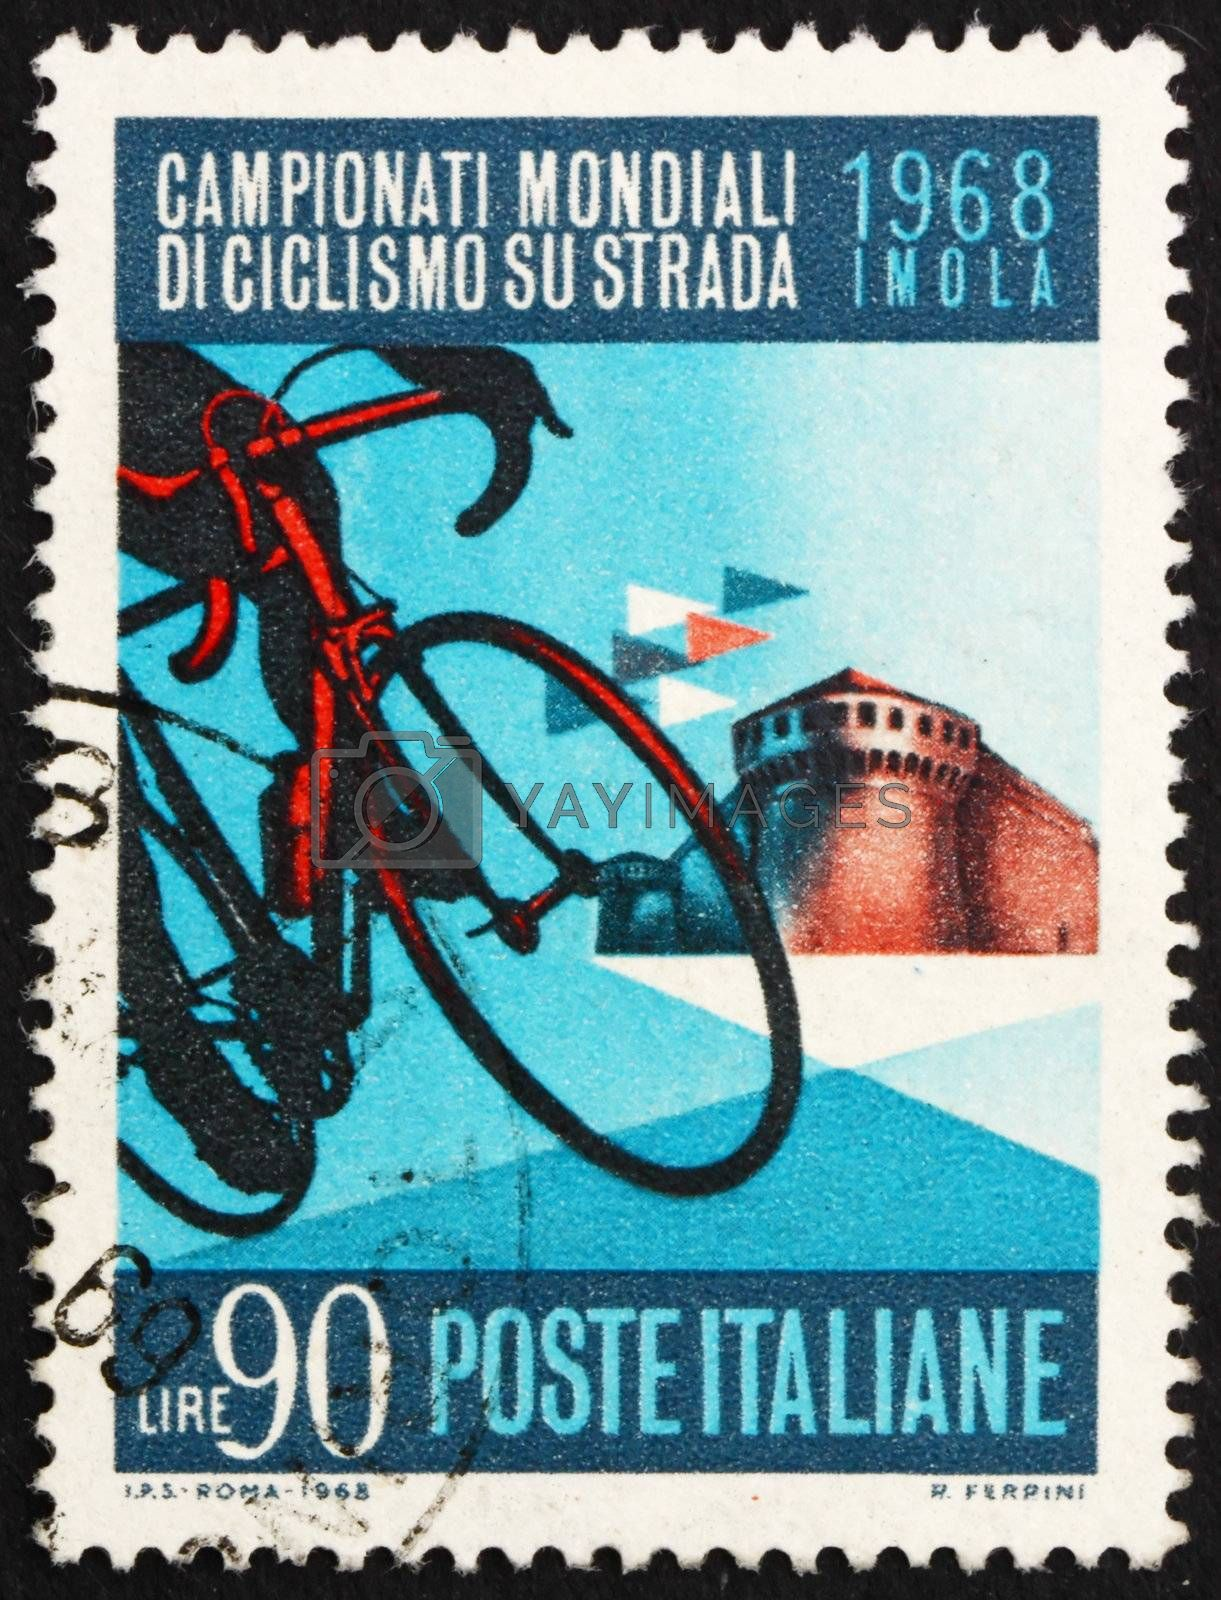 ITALY - CIRCA 1968: a stamp printed in the Italy shows Bicycle and Sforza Castle, Imola, the Road Championships at Imola, circa 1968